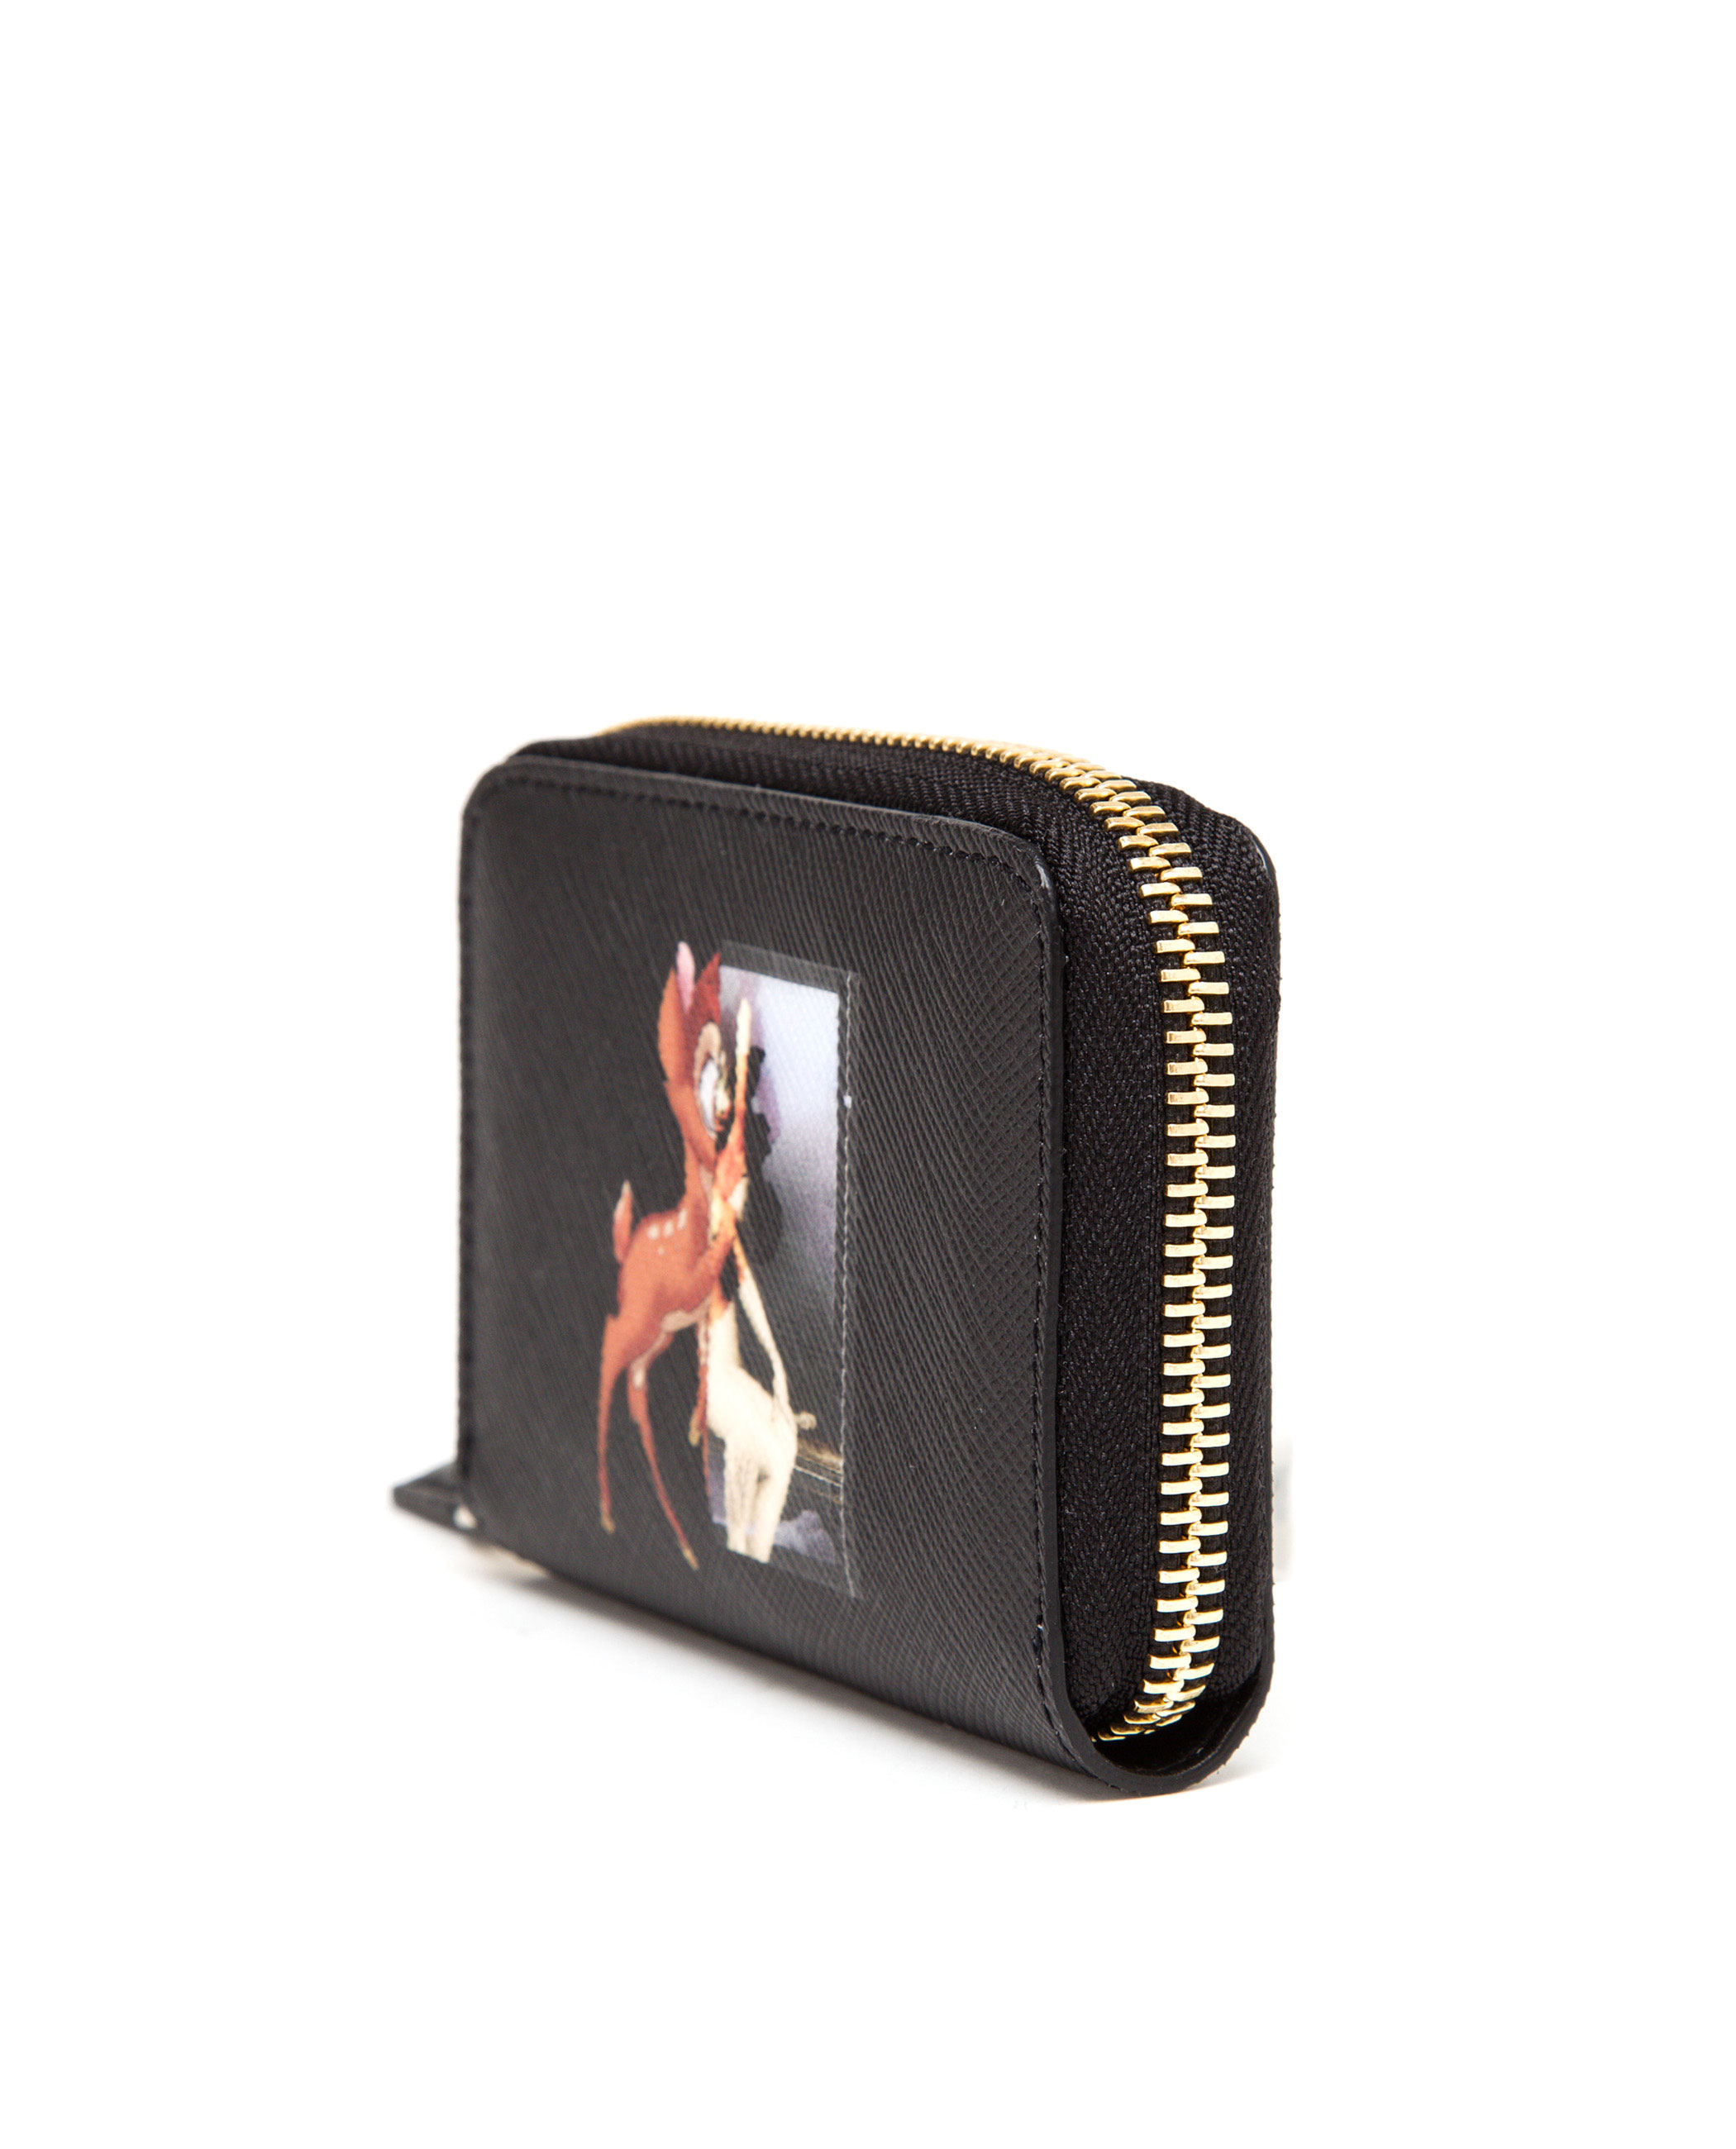 24c8cedacd Givenchy Bambi Coin Purse In Gray Lyst. Givenchy Mini Bambi Wallet In Black  Lyst